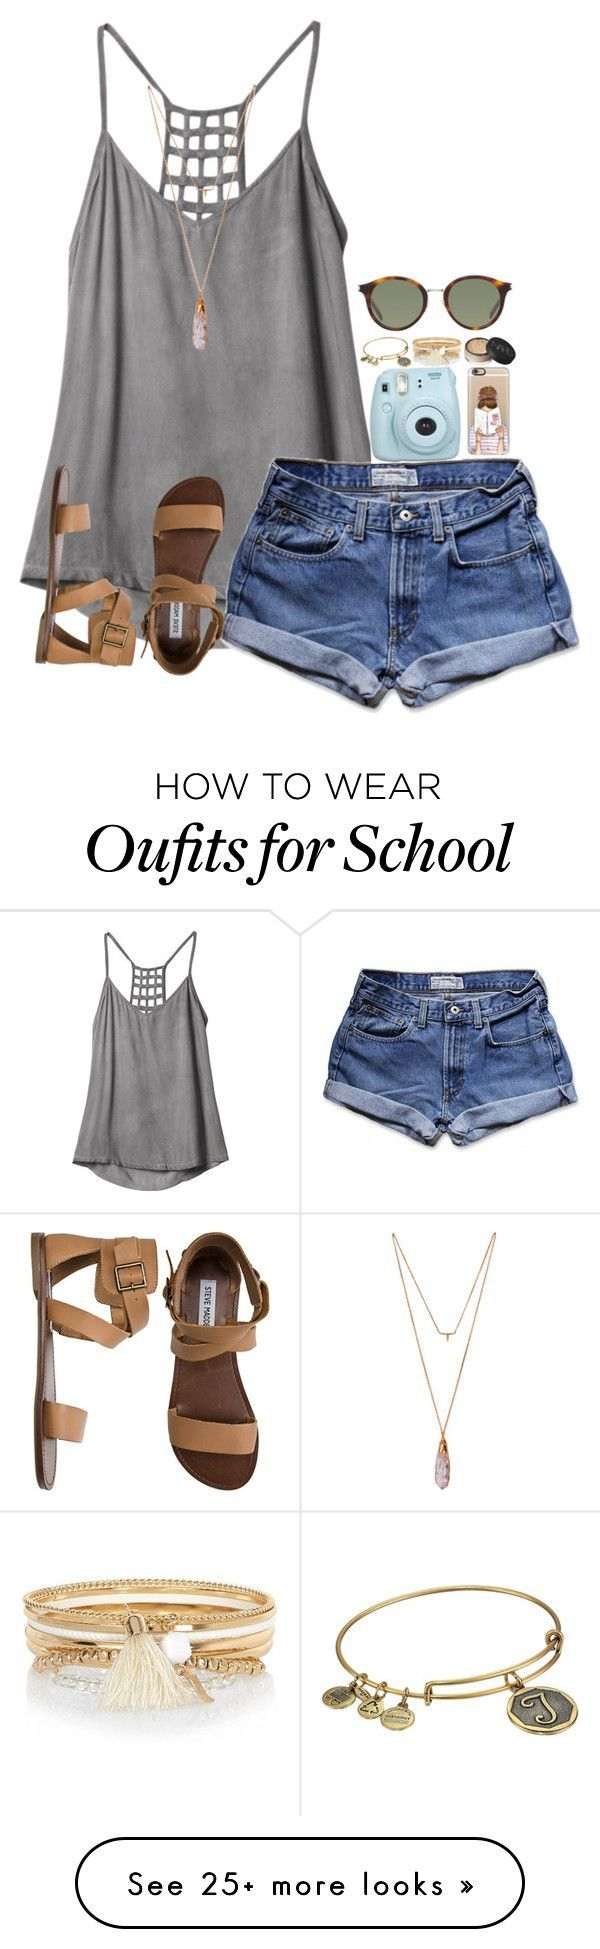 I made a lot of drafts so I'll be posting those because I m really busy with school lately by leawhite on Polyvore featuring RVCA, Abercrombie & Fitch, Alex and Ani, Casetify, River Island, NARS Cosmetics, Yves Saint Laurent, Steve Madden and Tiffany & Co.